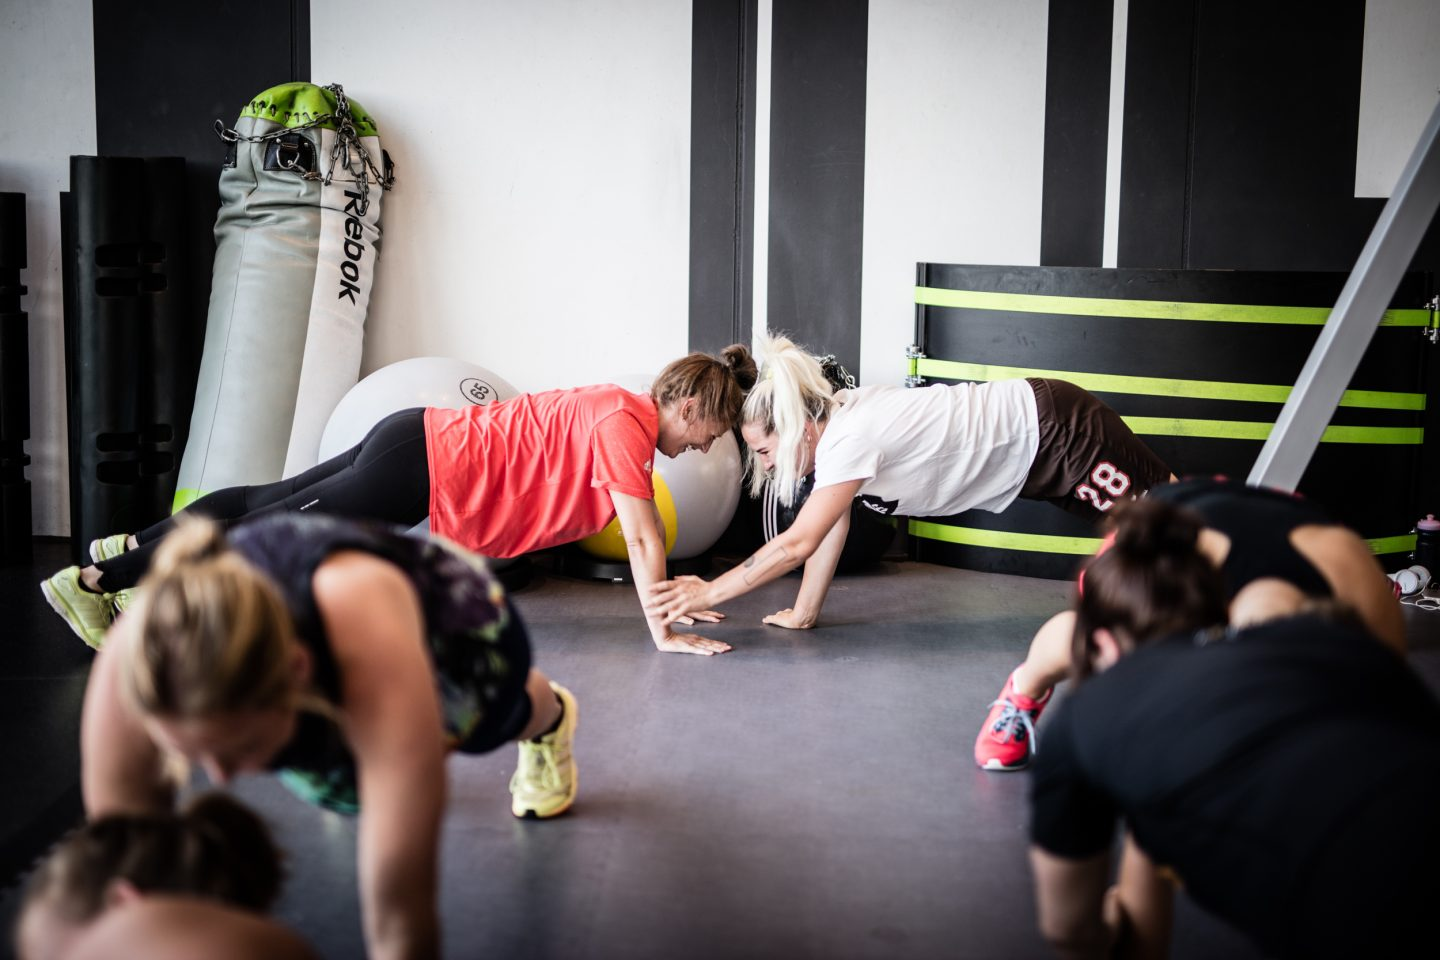 A group of people are in plank position during a workout while two women are seen performing the exercises as partners. Workout; Fitness; Gym; Motivation; Dedication; Teamwork; Partner; Reebok; Adidas; GamePlan A